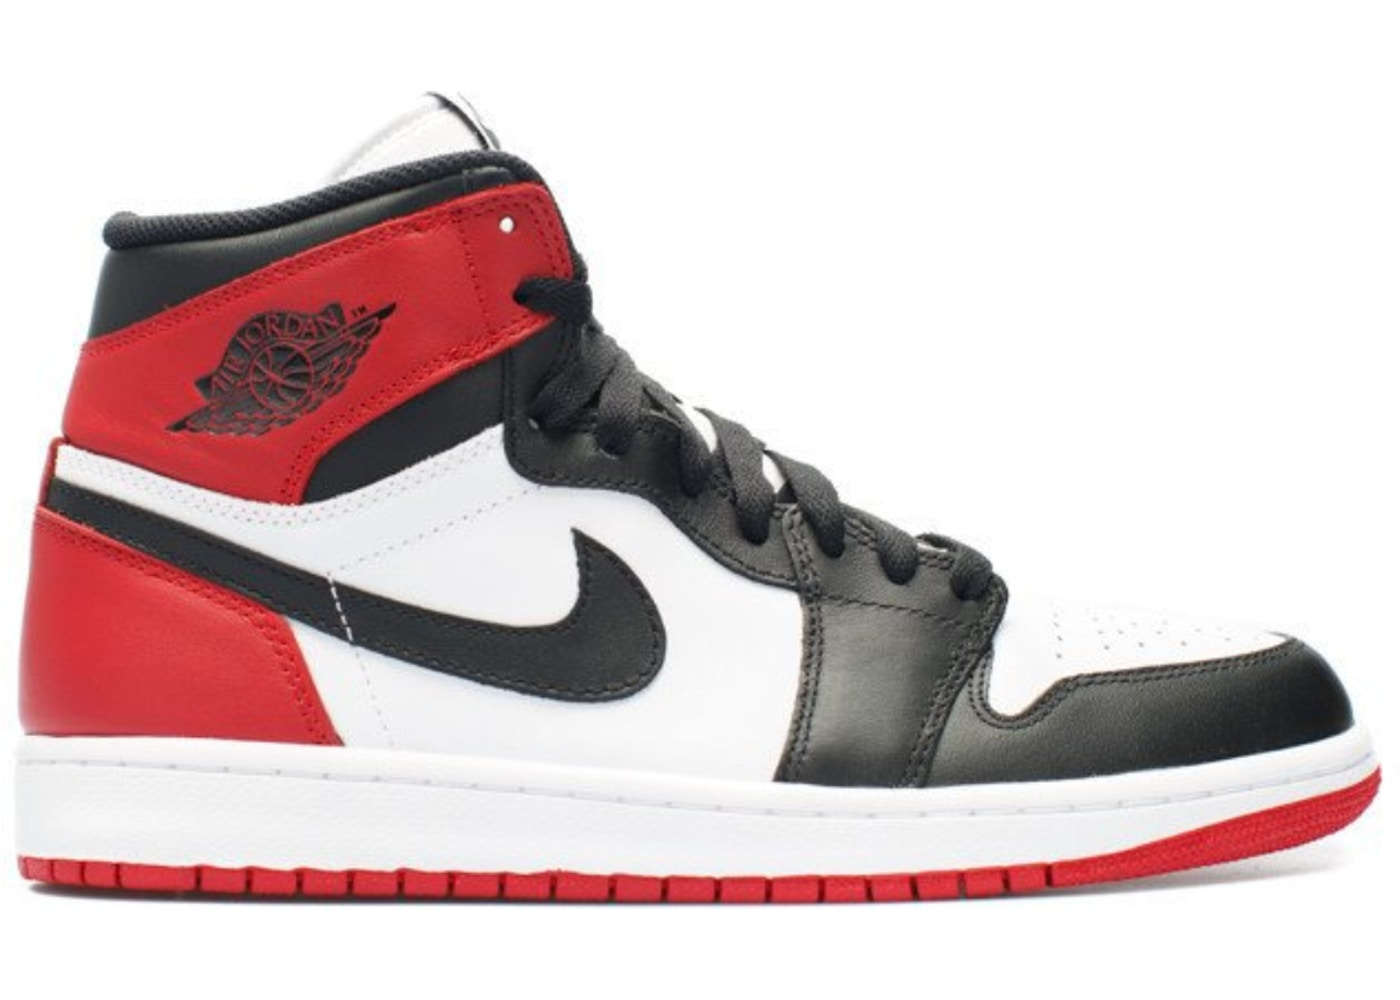 Jordan 1 Retro Black Toe (2016) - 555088-125 11b7c87813be